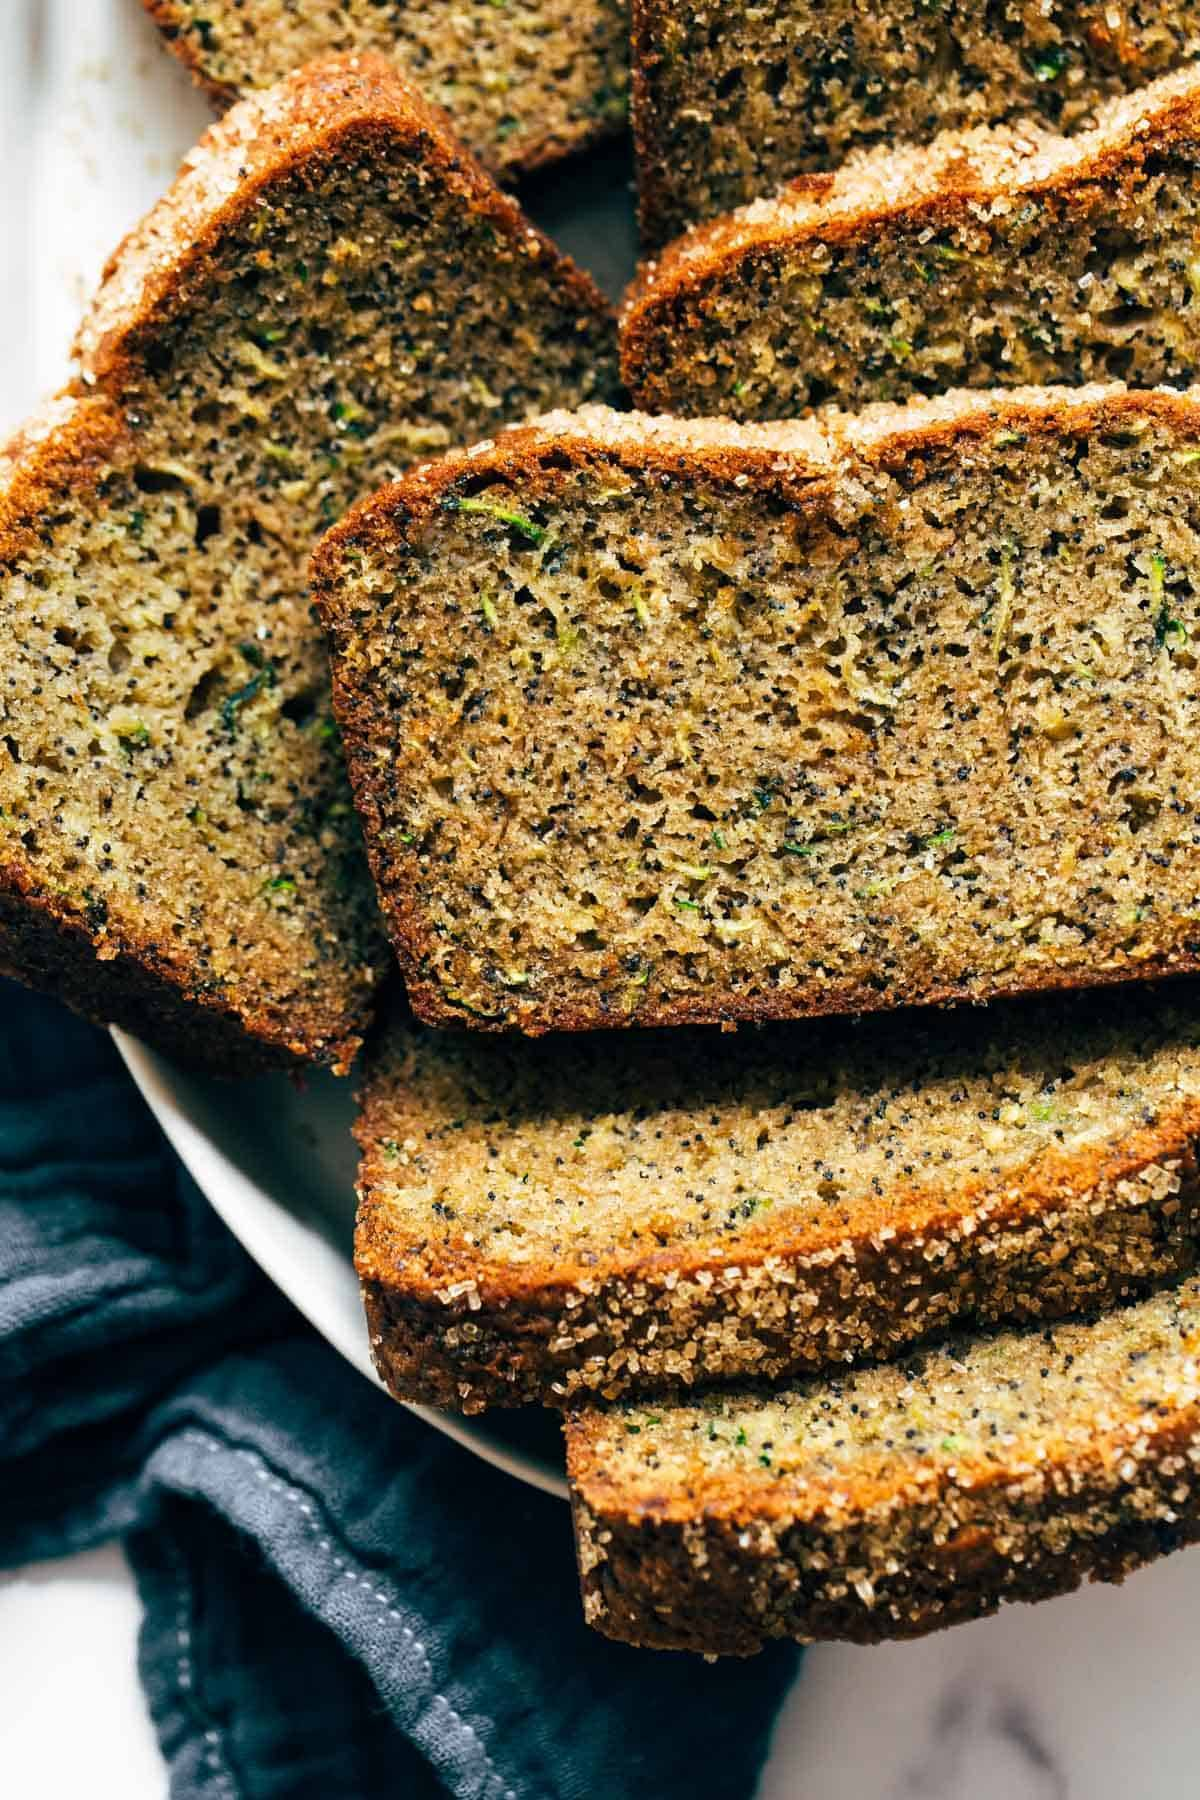 Lemon Poppyseed Zucchini Bread stacked on a plate.